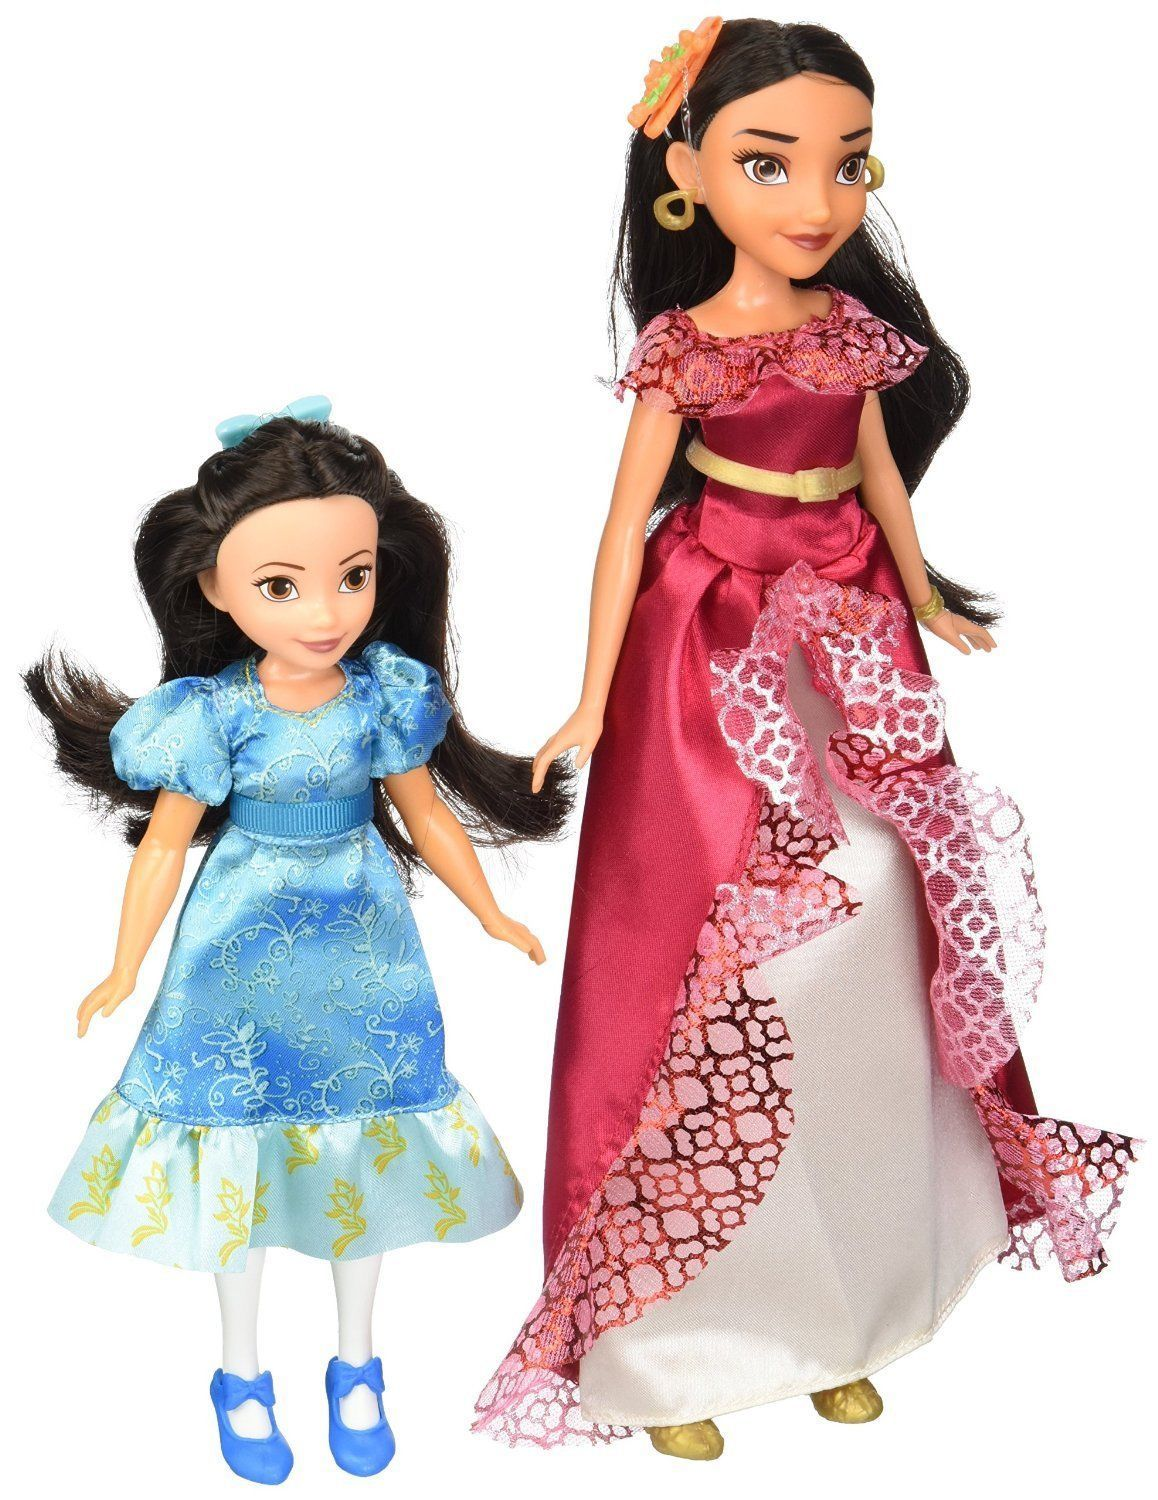 Disney Elena of Avalor & Princess Isabel Doll 2-Pack Set, Hasbro, 3+